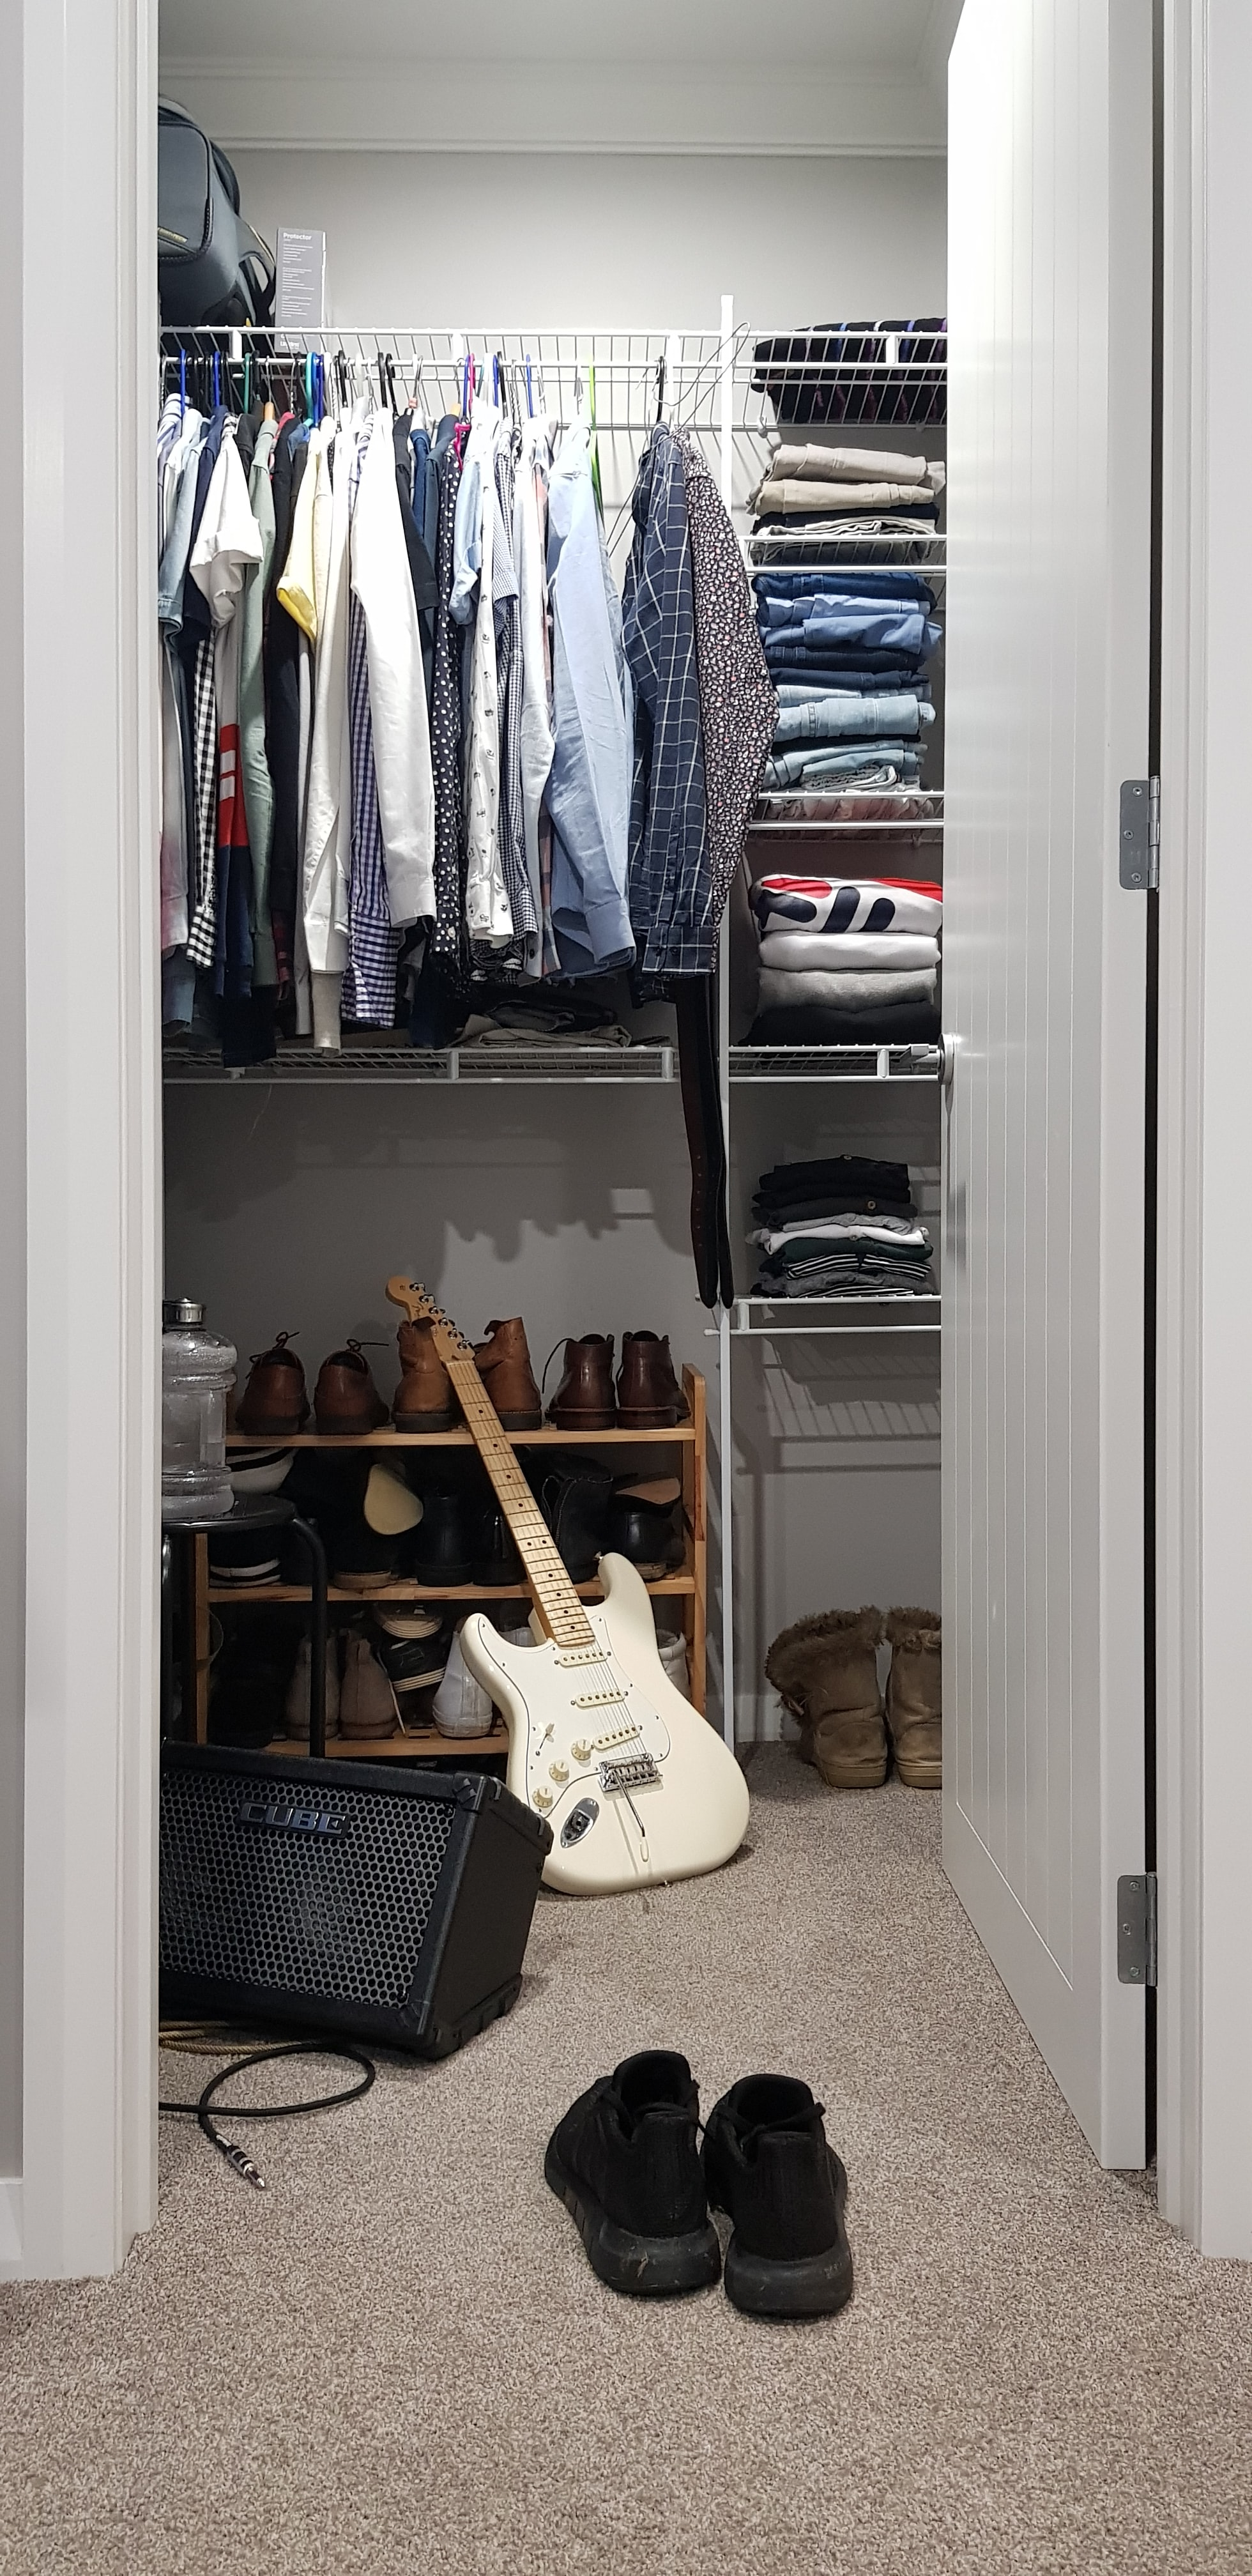 white electric guitar in closet